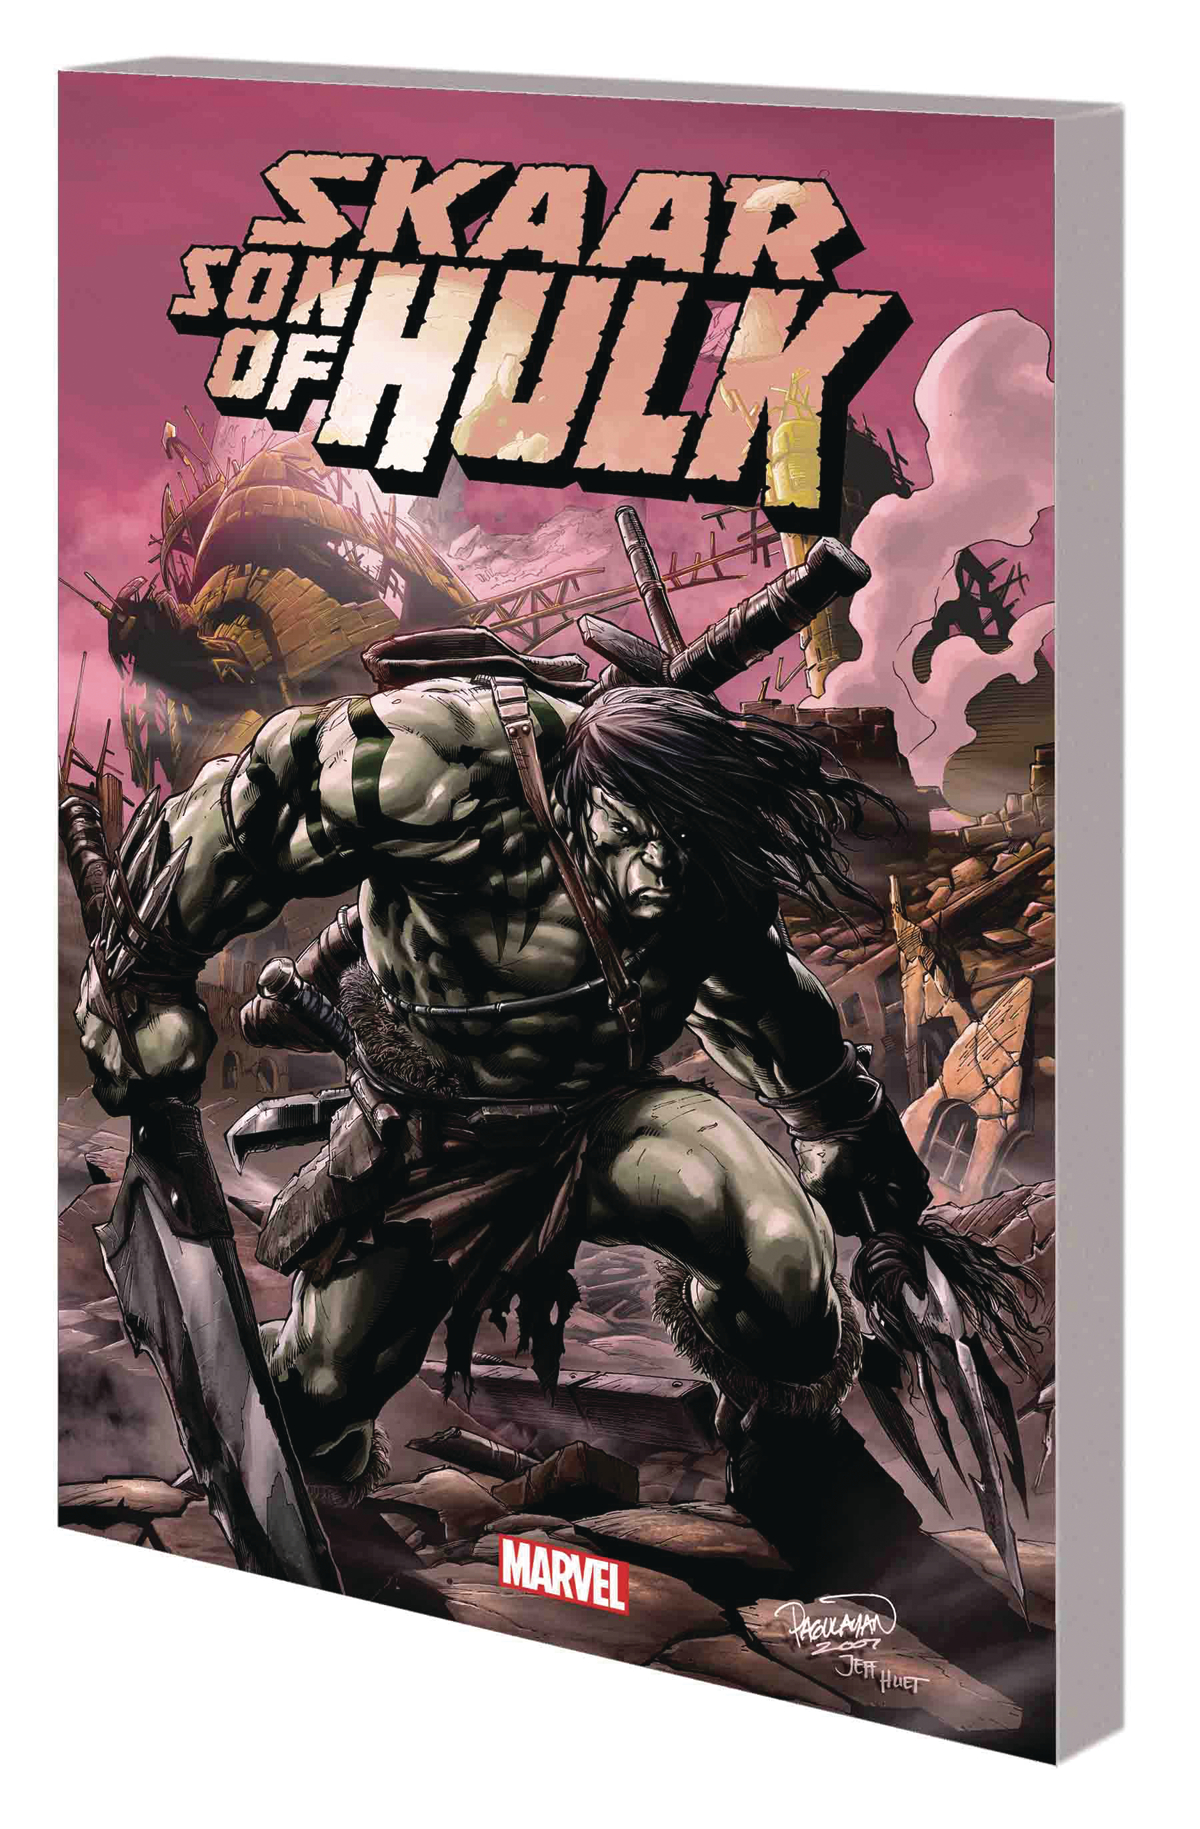 SKAAR SON OF HULK TP COMPLETE COLLECTION